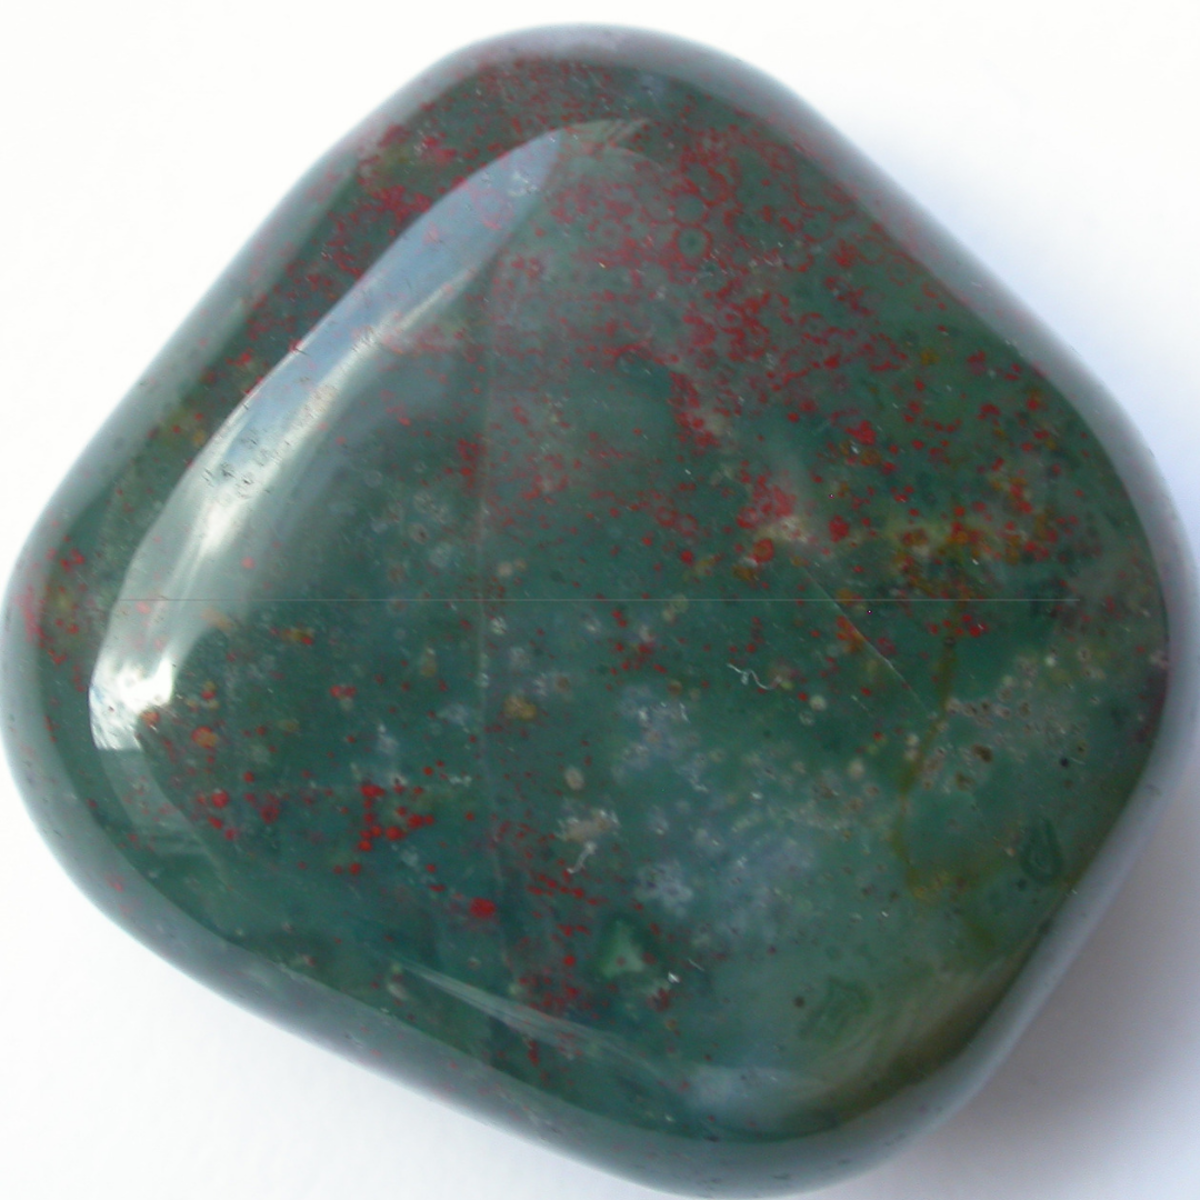 Bloodstone is a popular stone used for crystal healing.